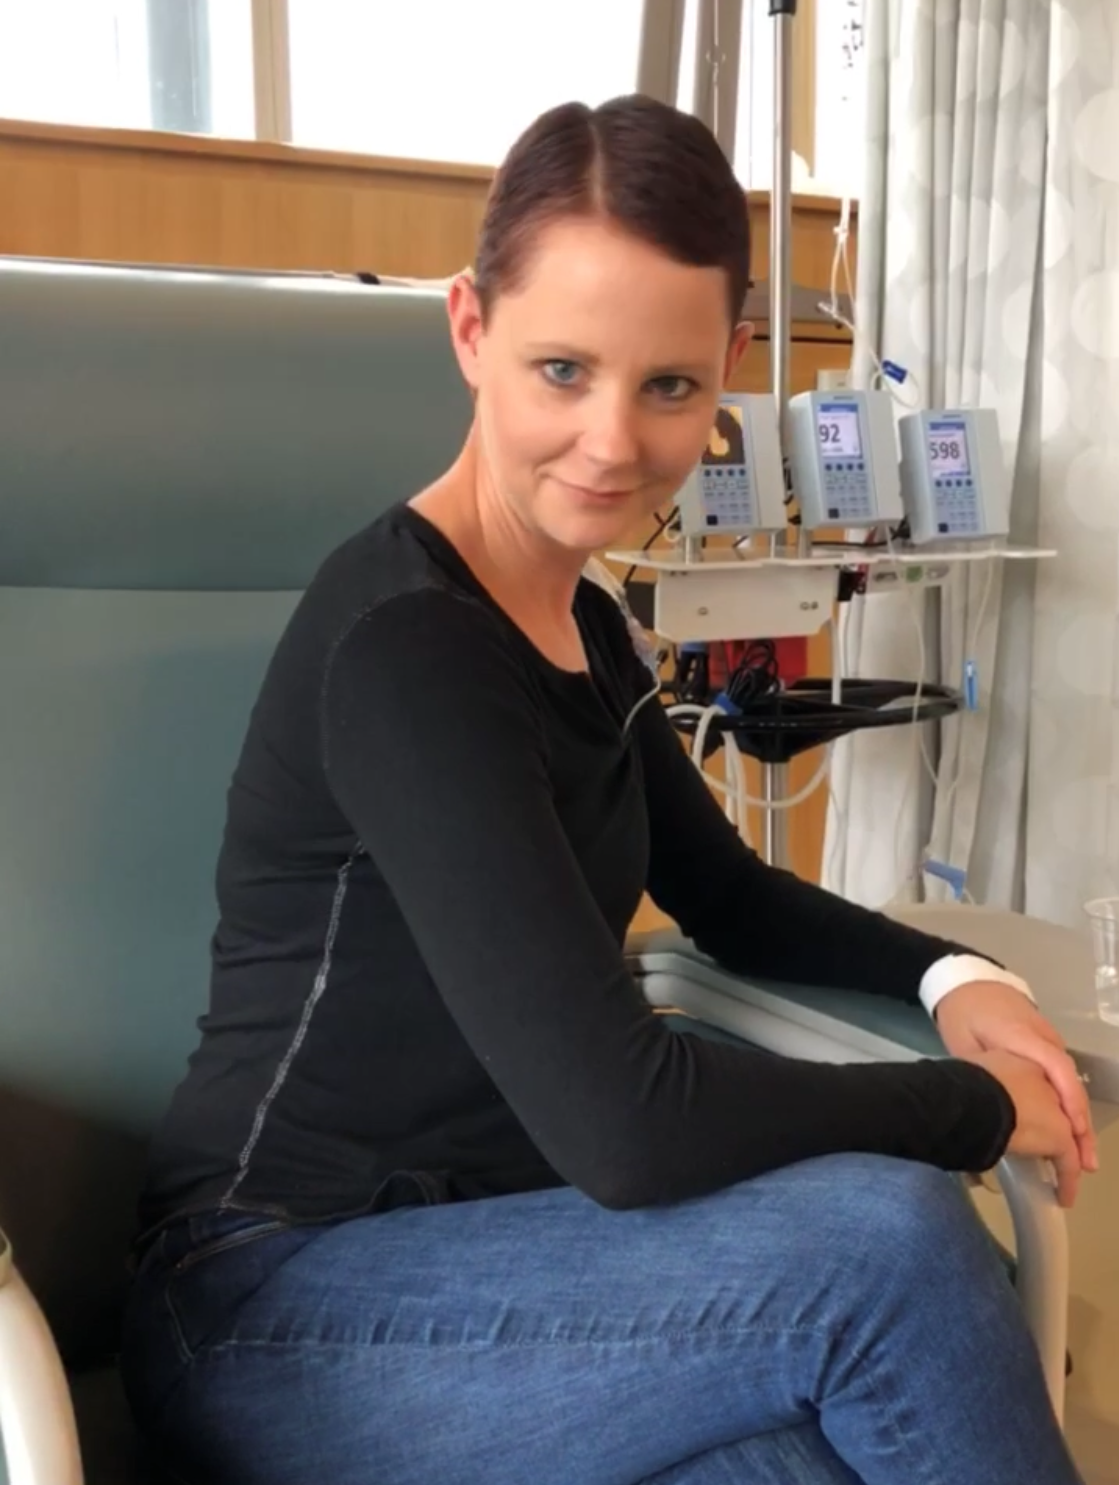 lindsy matthews, breast cancer, cancer, chemo, herceptin, personal trainer